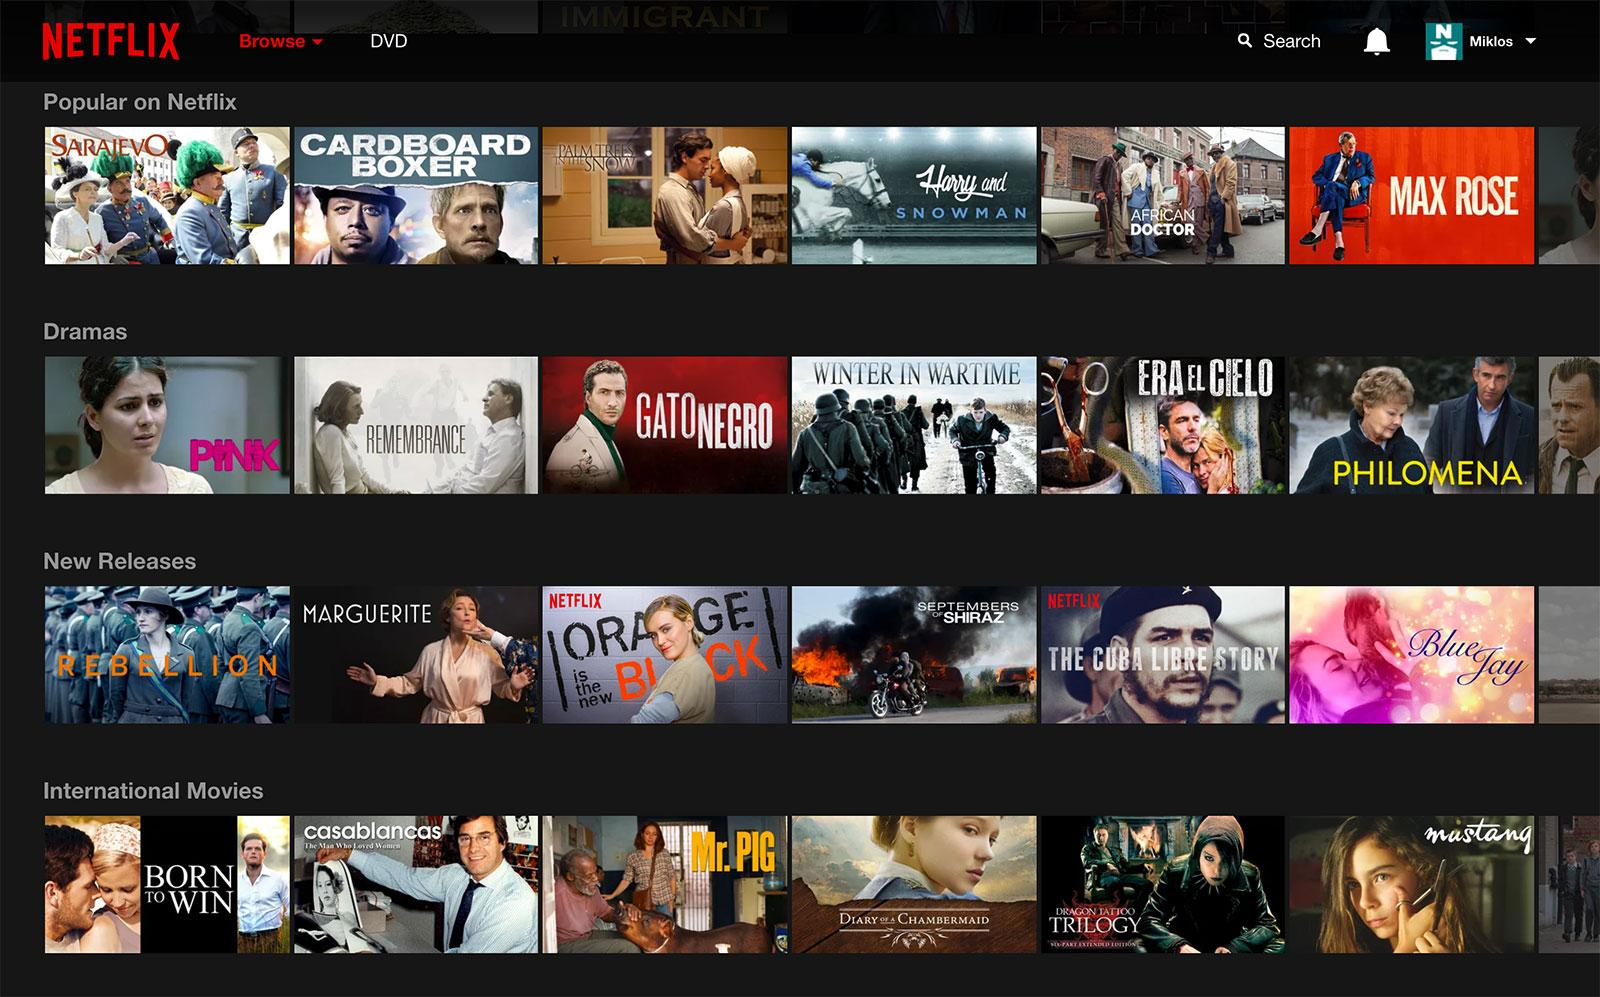 Netlfix UI personalization to boost user experience